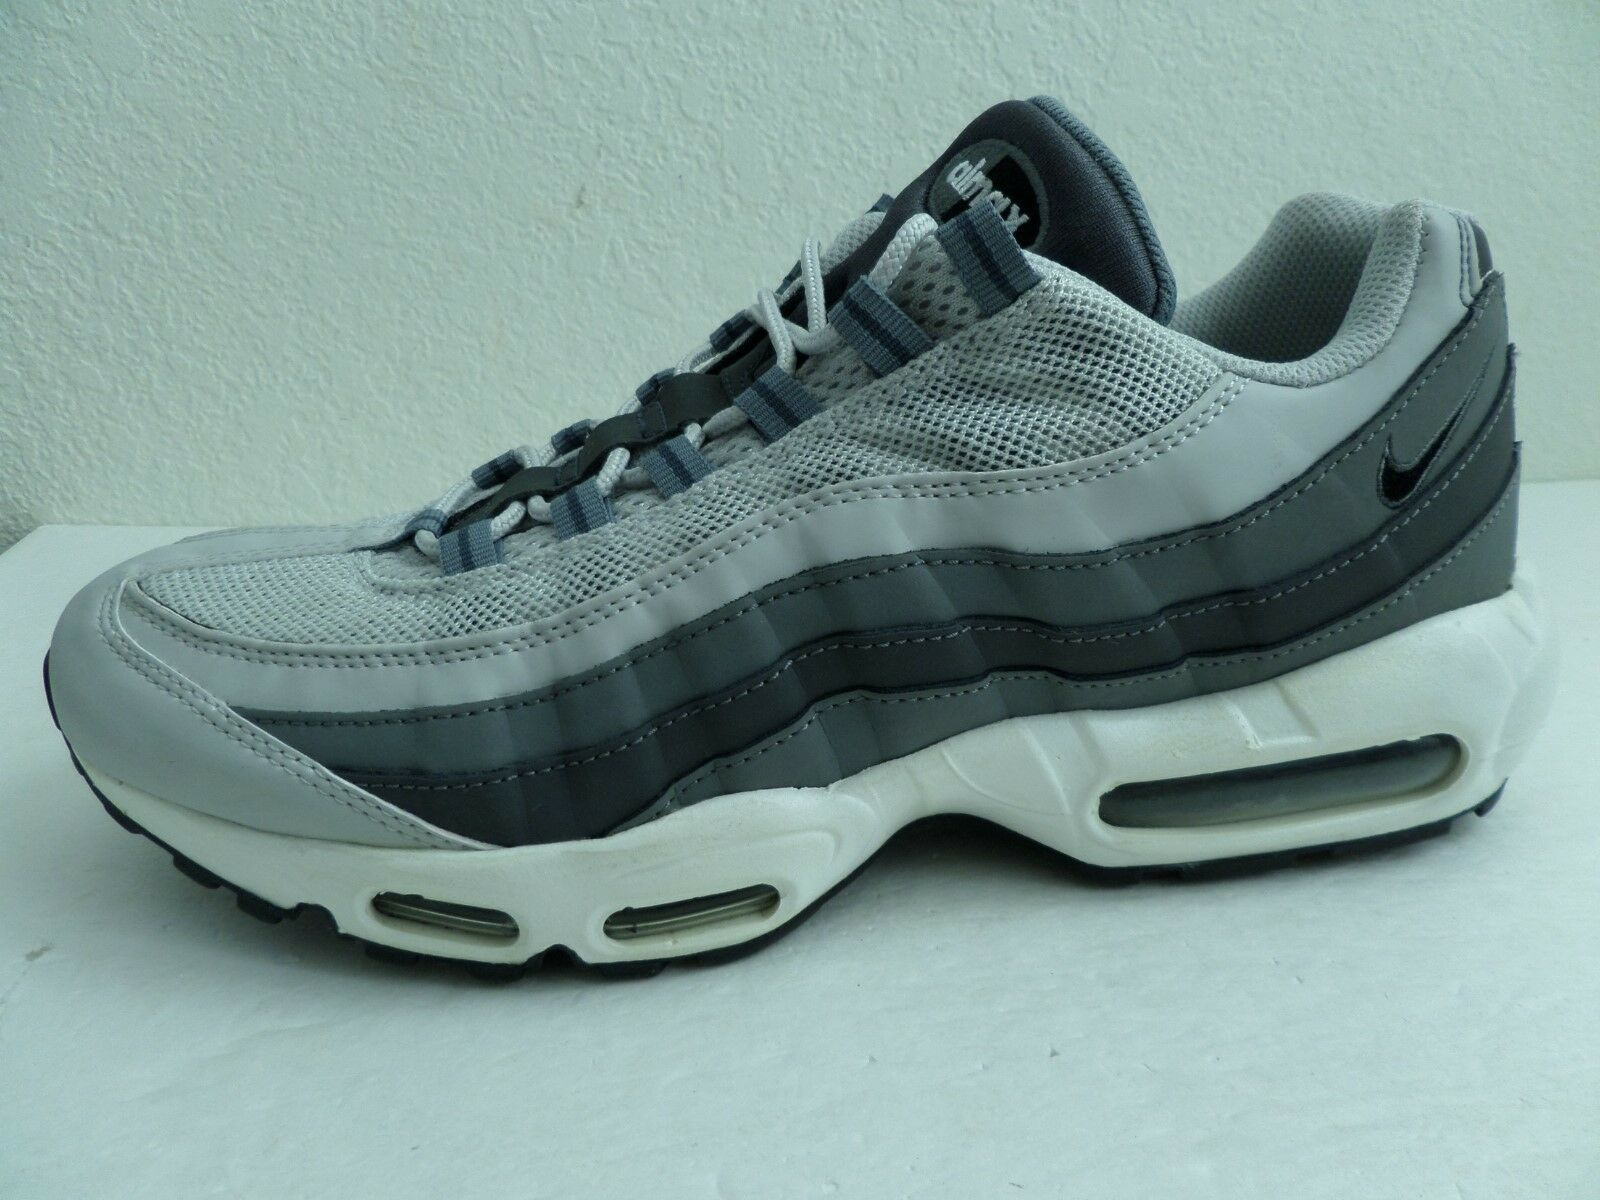 Nike Air Max 95 Men's Running shoes Grey White 609048 085 (US 11)